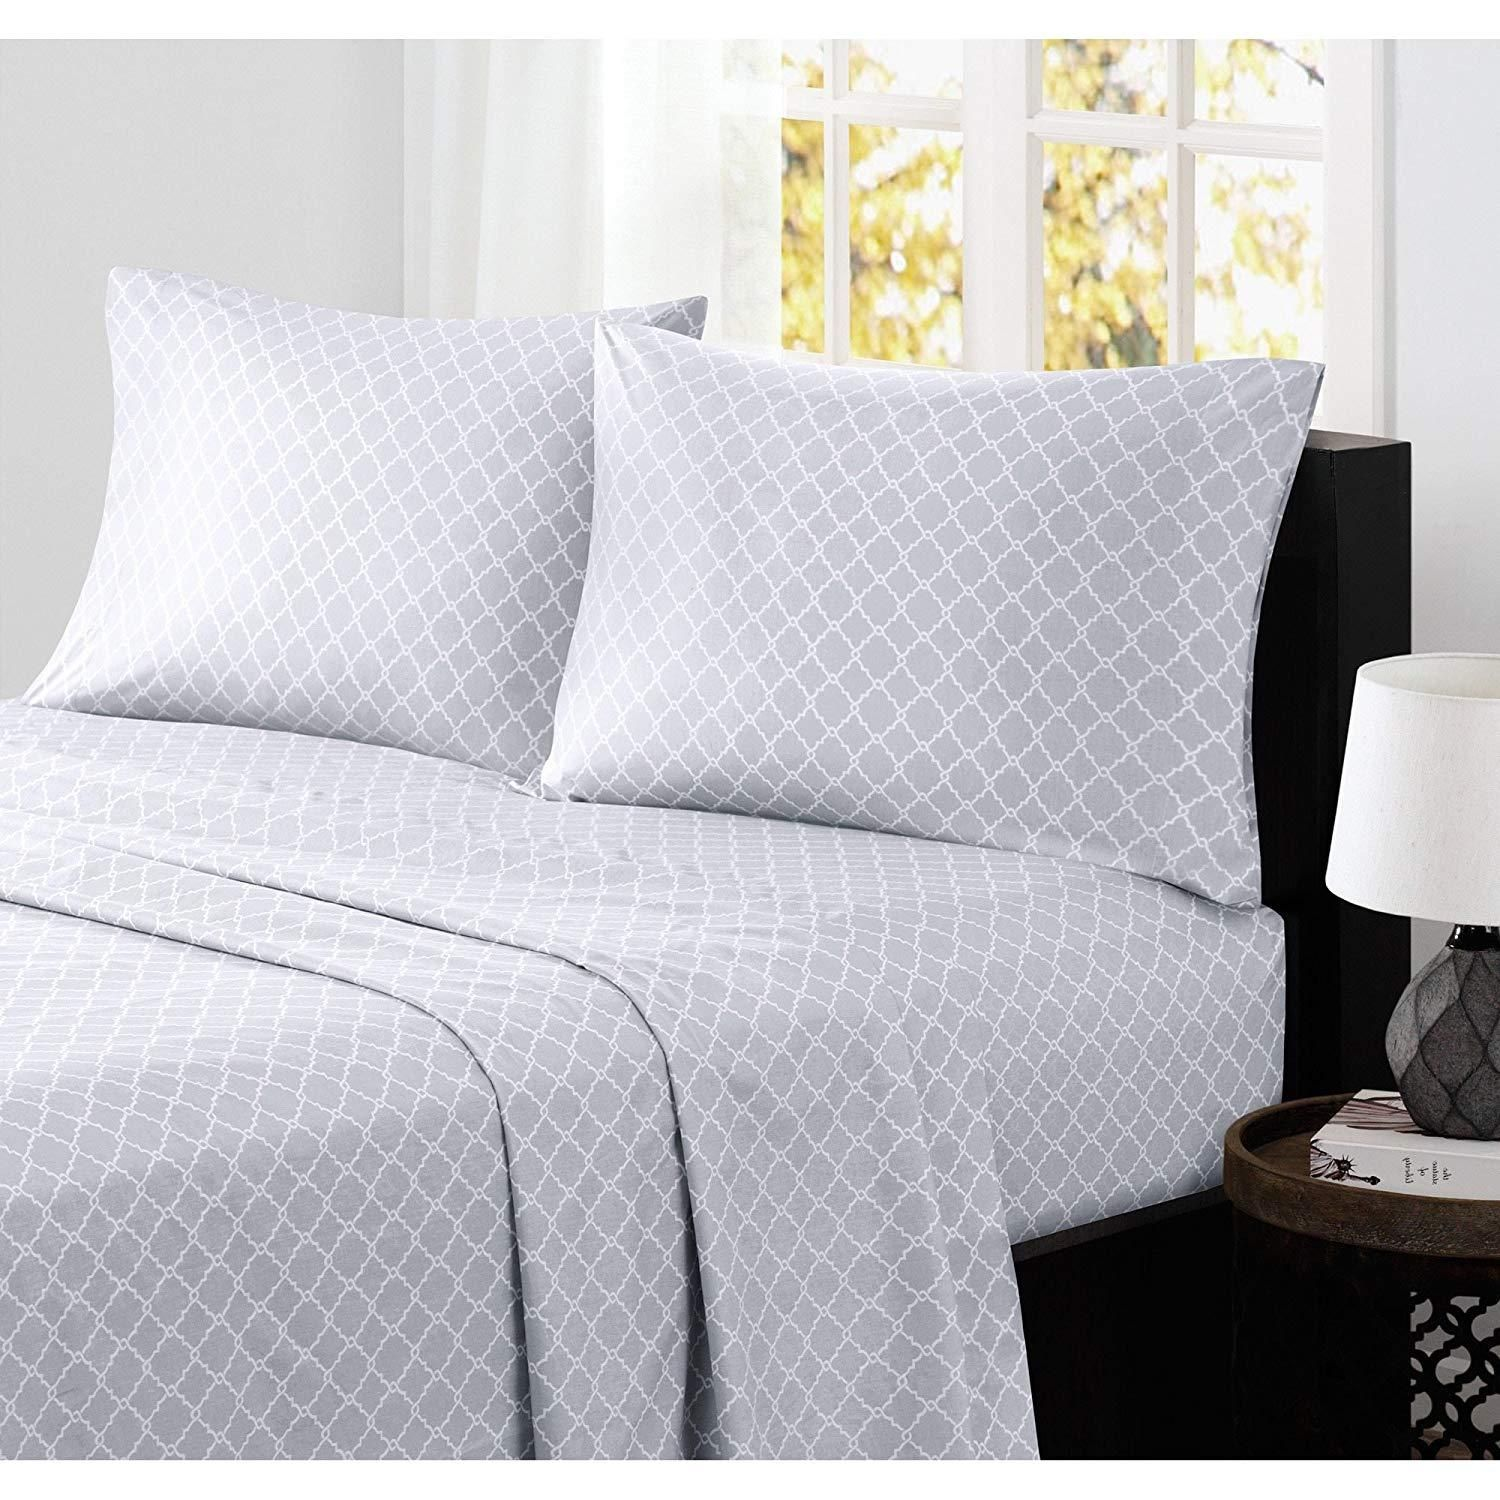 Grey White Geometric Fretwork Pattern Sheets King Set Luxurious Light Gray Moroccan Trellis Bedding Hippie Texture Patterned Sheets Texture Design Queen Sheets